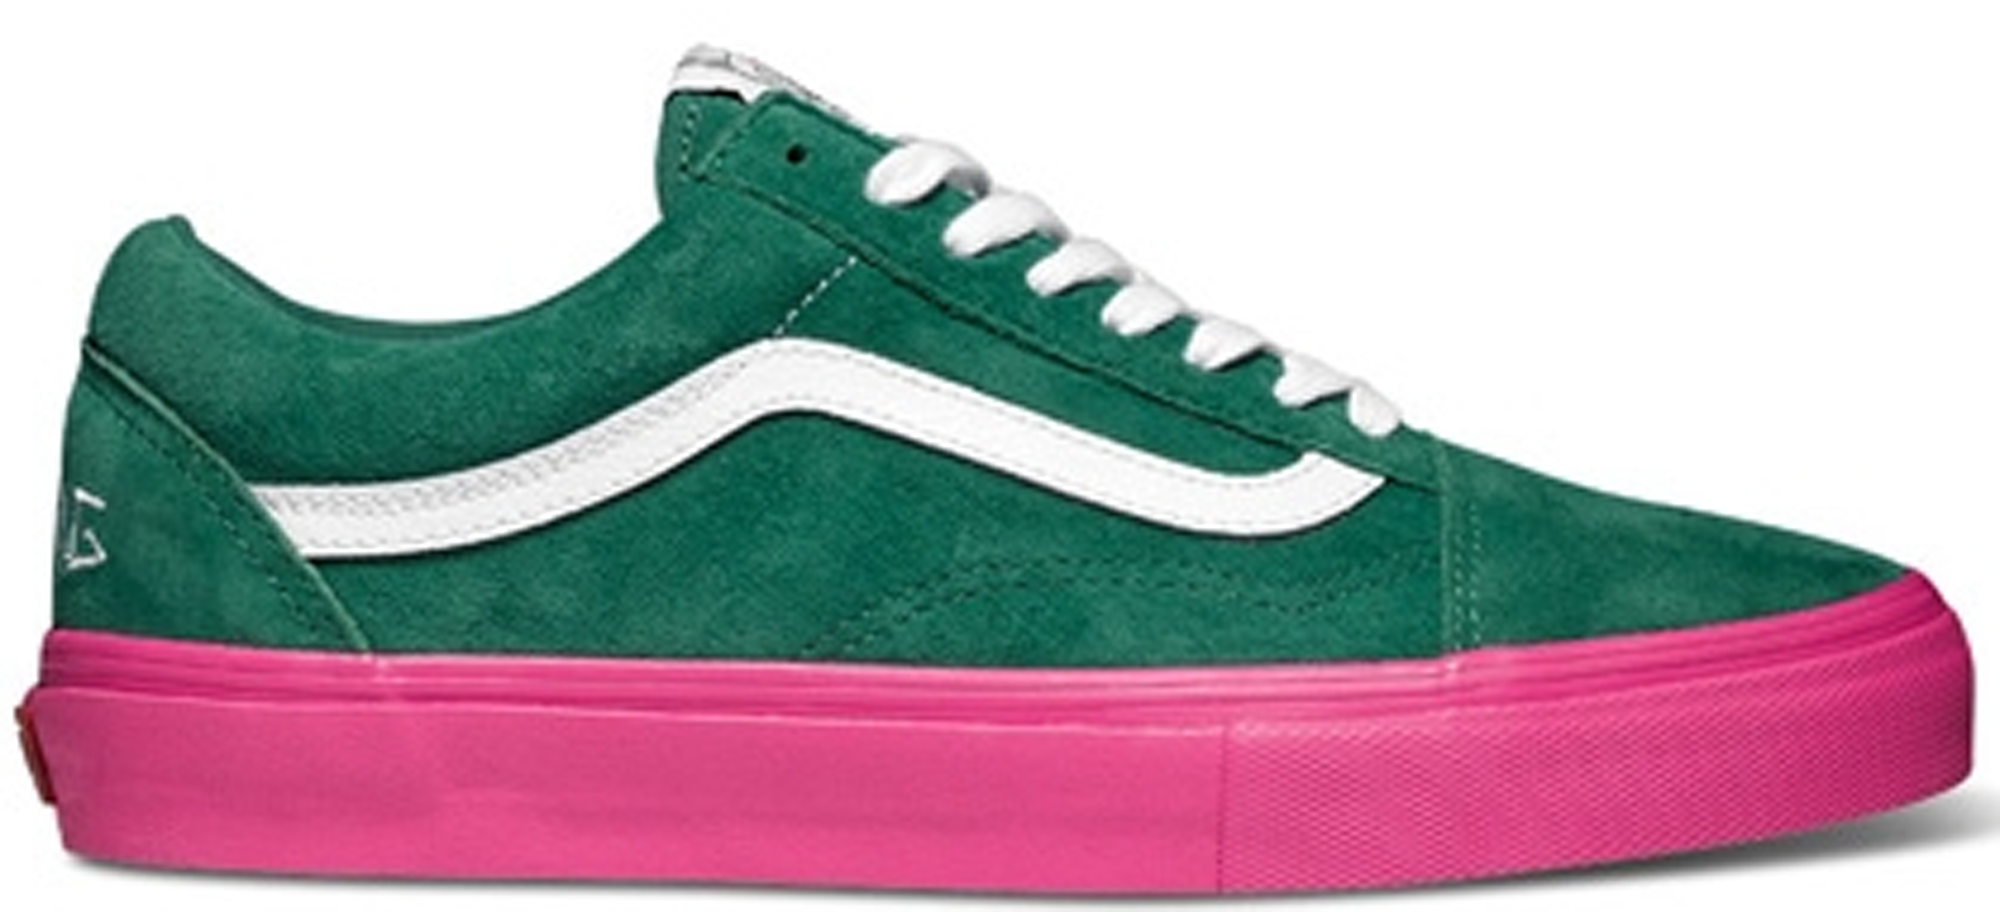 vans old skool pro s shoe golf wang - www.cytal.it 02486abd6